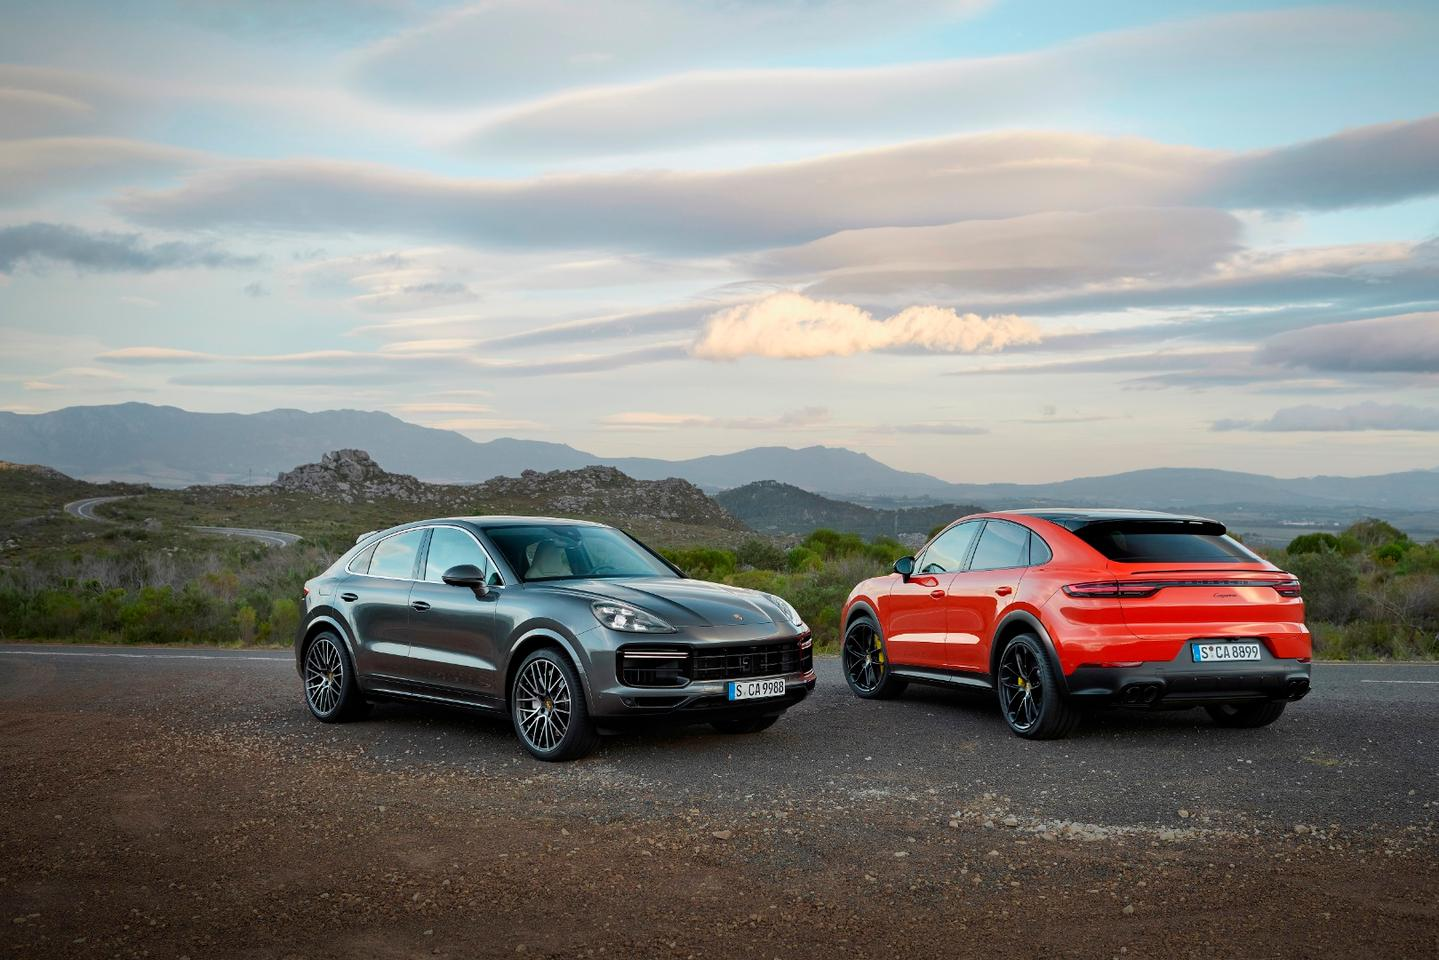 The 2020 Porsche Cayenne Coupe will come in both a standard and a Turbo Coupe model, equipped with a turbocharged V6 and V8 respectively